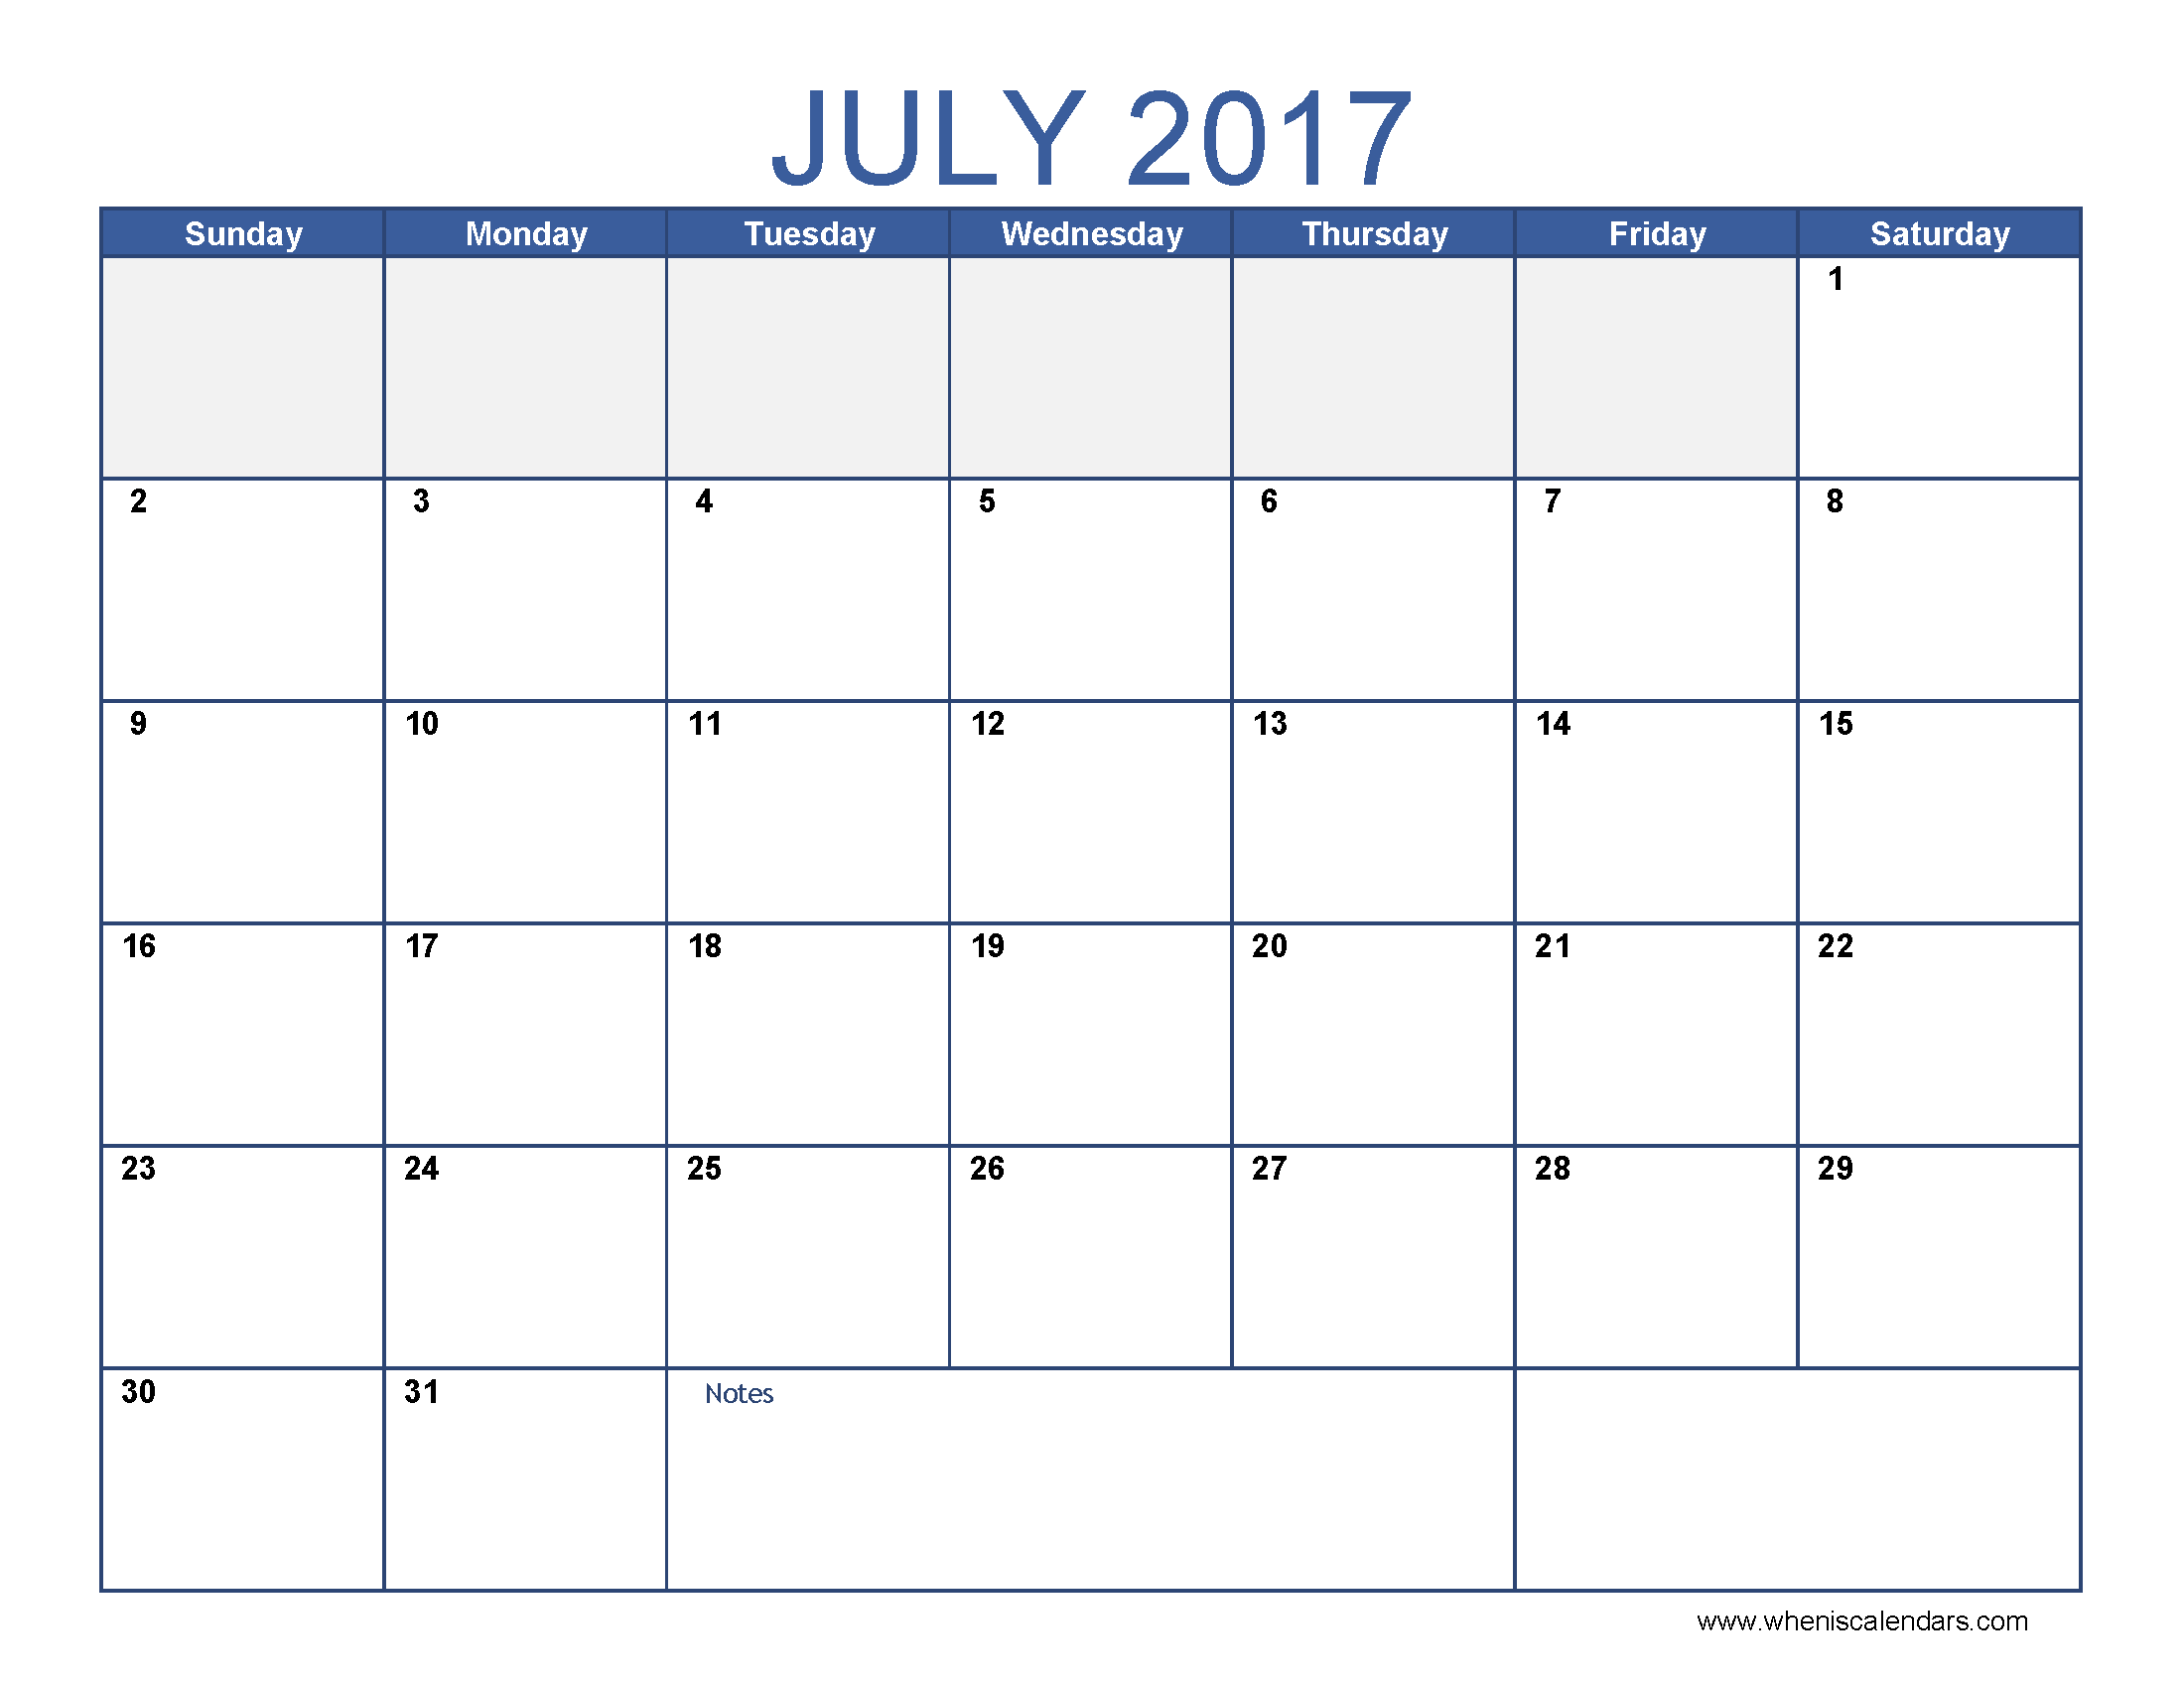 July 2017 Calendar Template | blank calendar printable